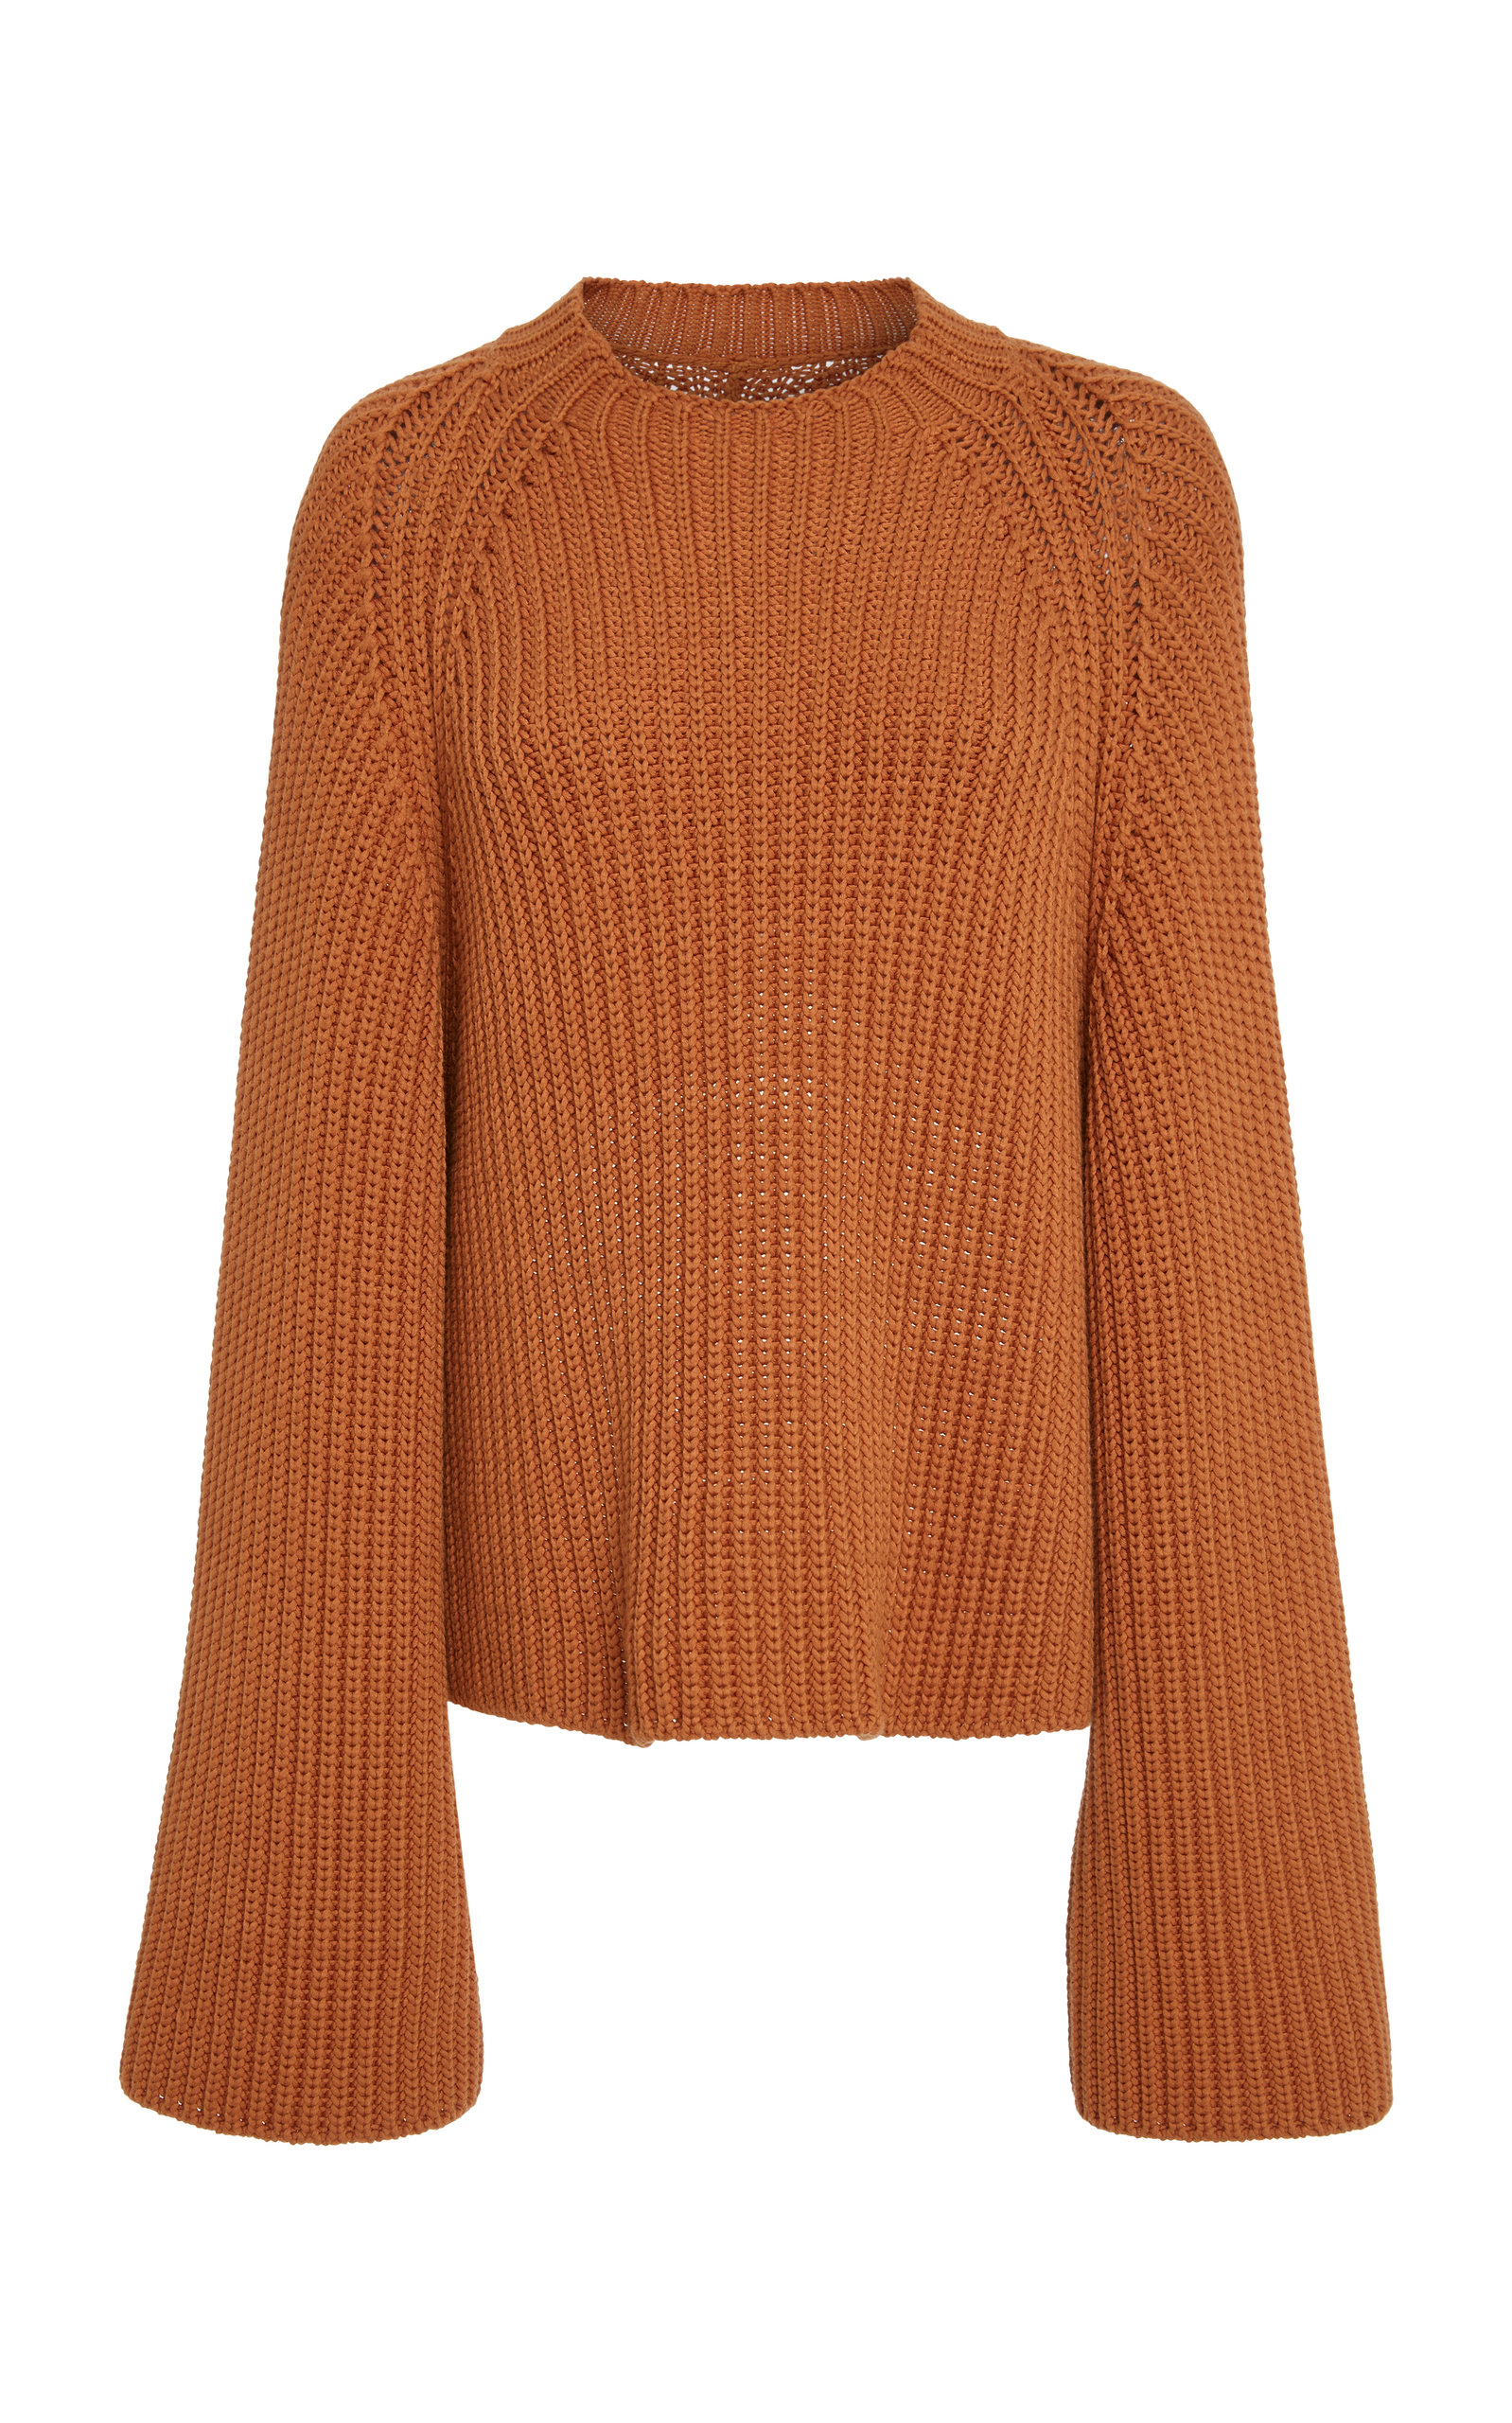 ROSETTA GETTY Cropped Rib Knit Flared Sweater in Brown